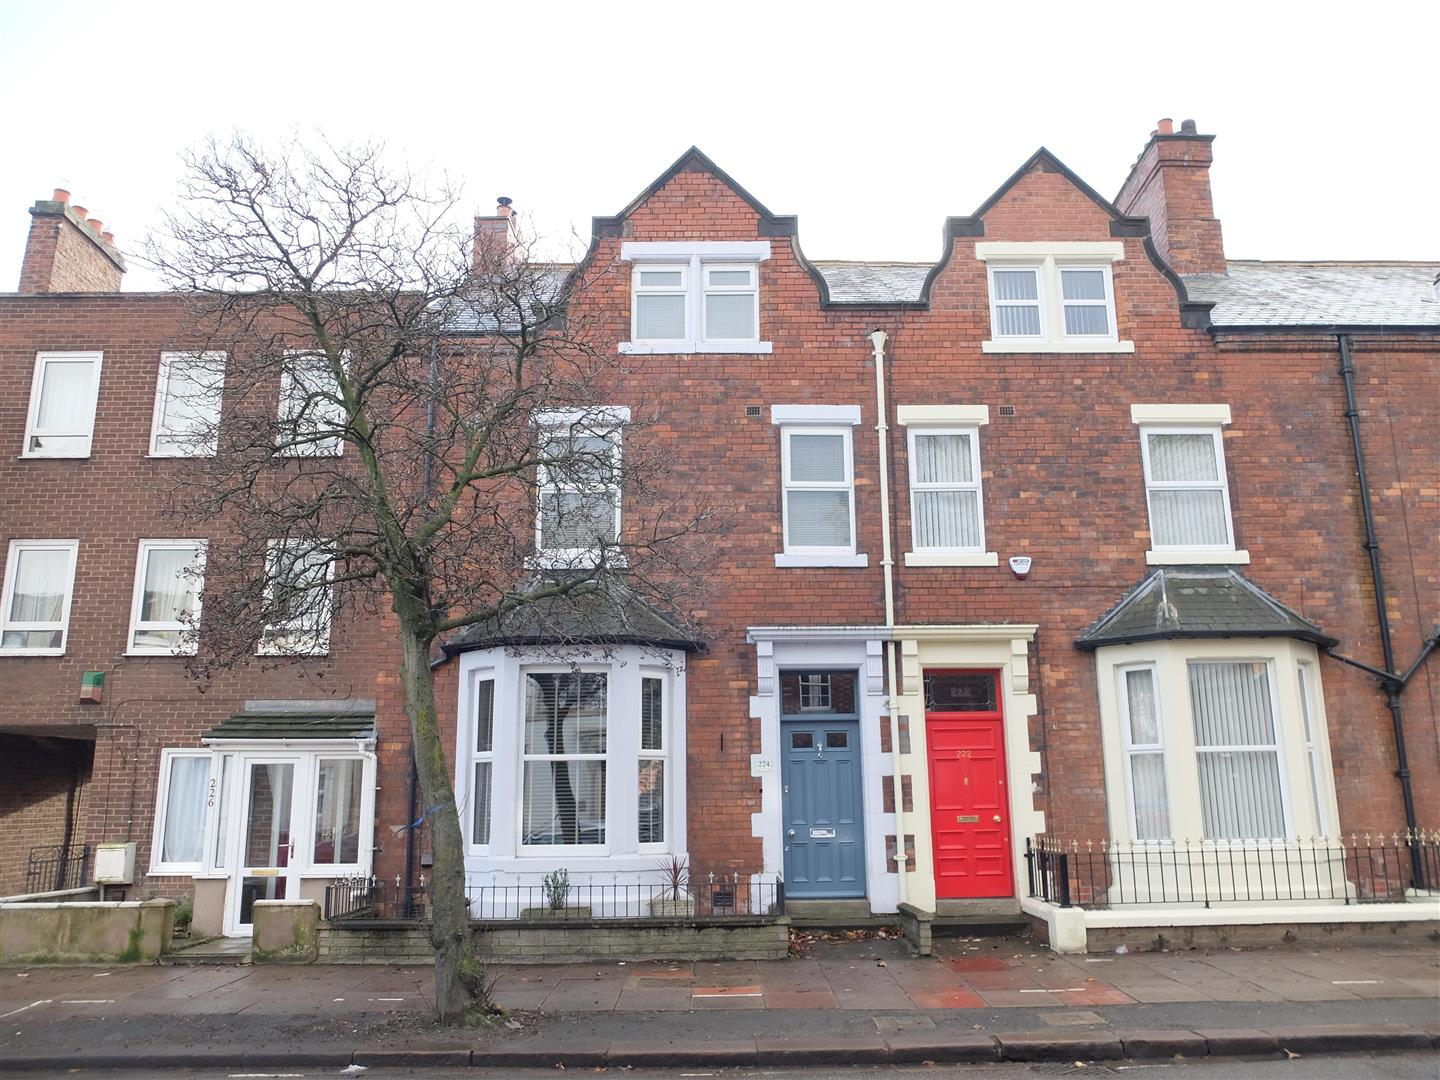 224 Warwick Road Carlisle 5 Bedrooms House - Mid Terrace For Sale